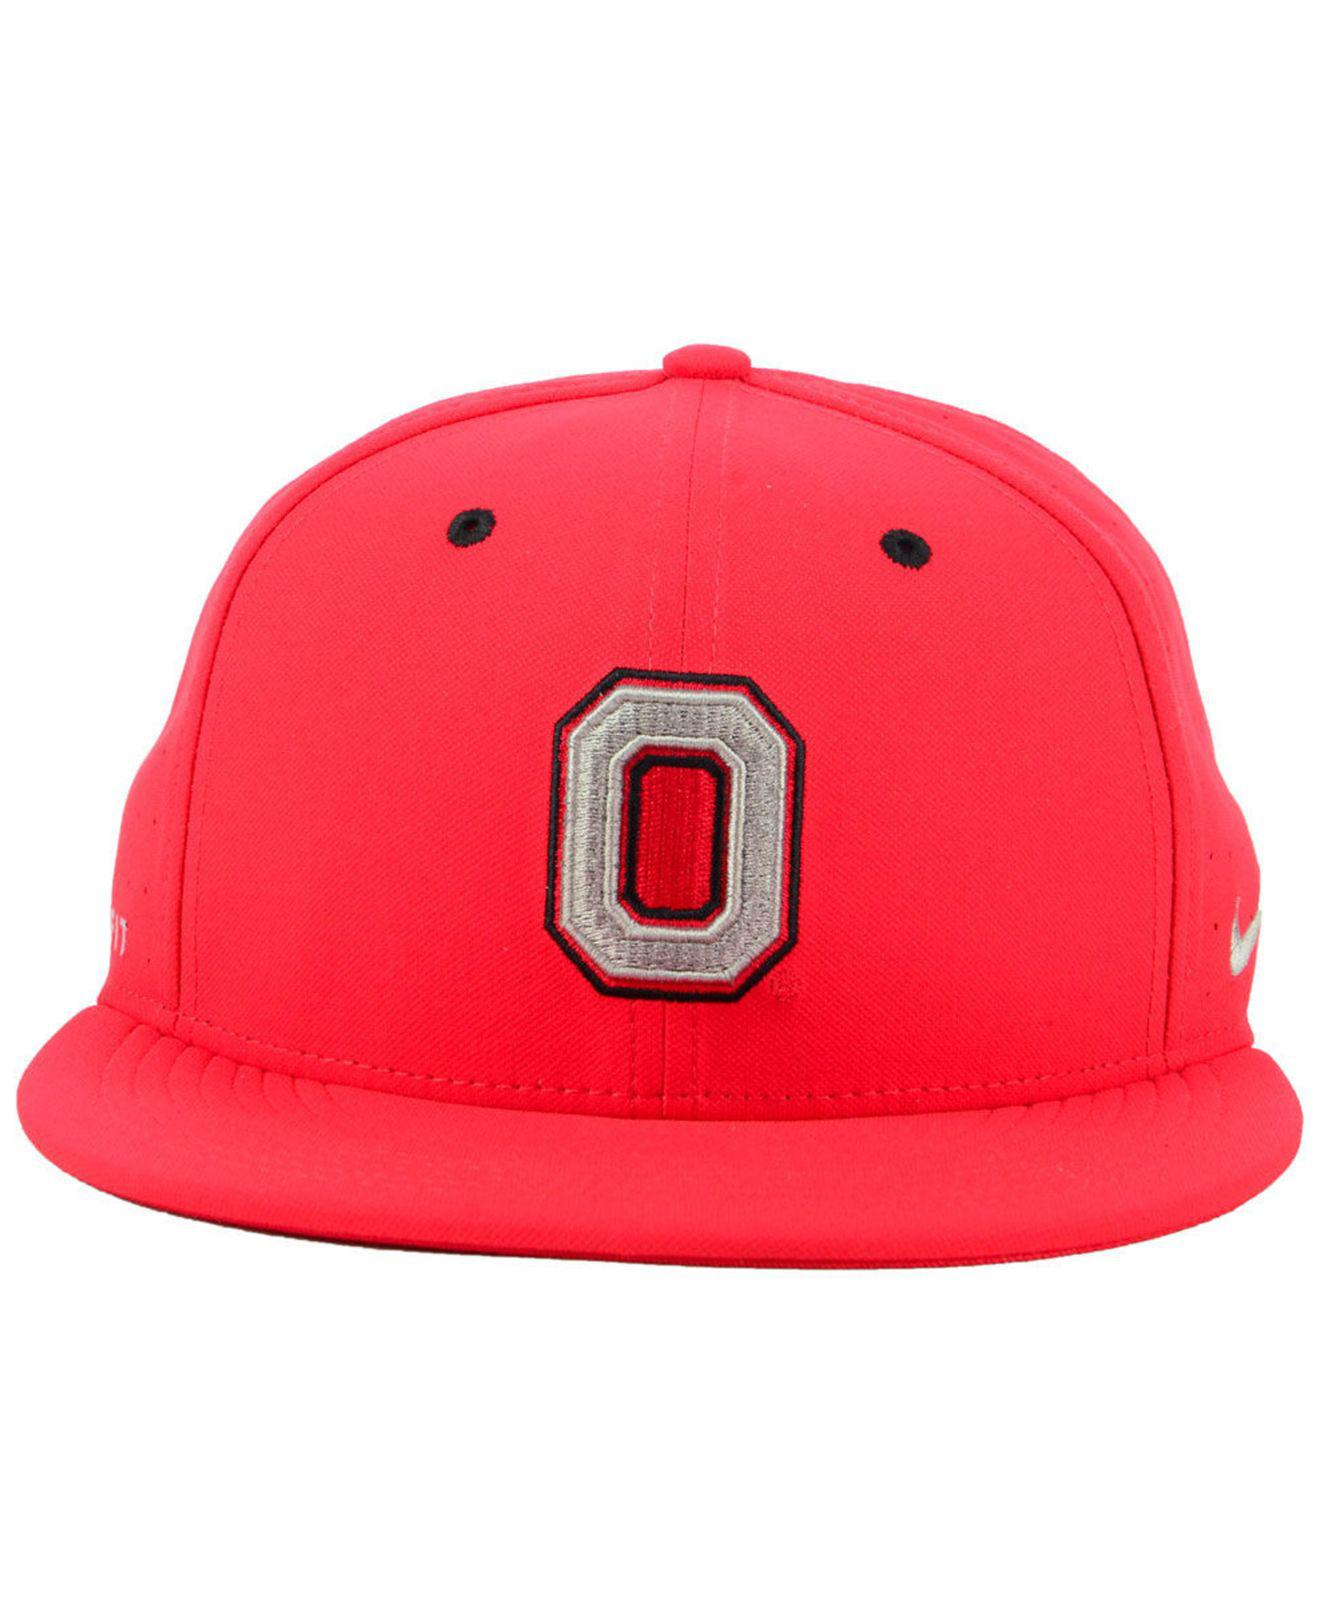 82553d863ab ... get lyst nike ohio state buckeyes aerobill true fitted baseball cap in  red for men 66a53